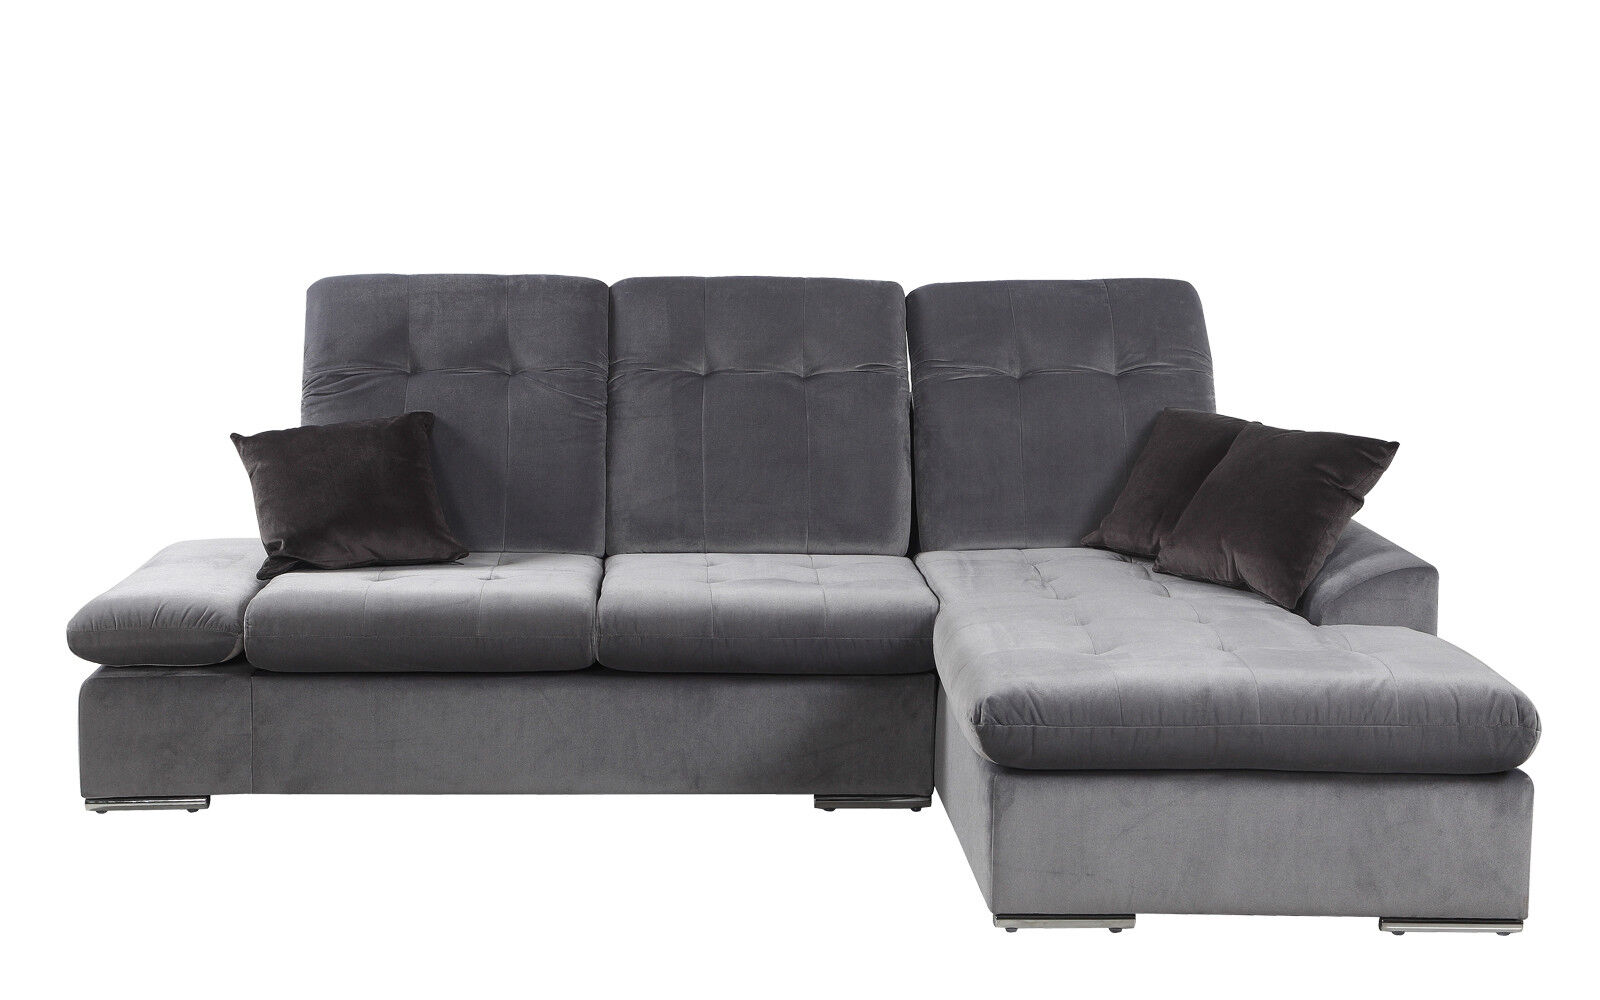 Modern Brush Microfiber L-Shape Sectional Sofa with Chaise Lounge